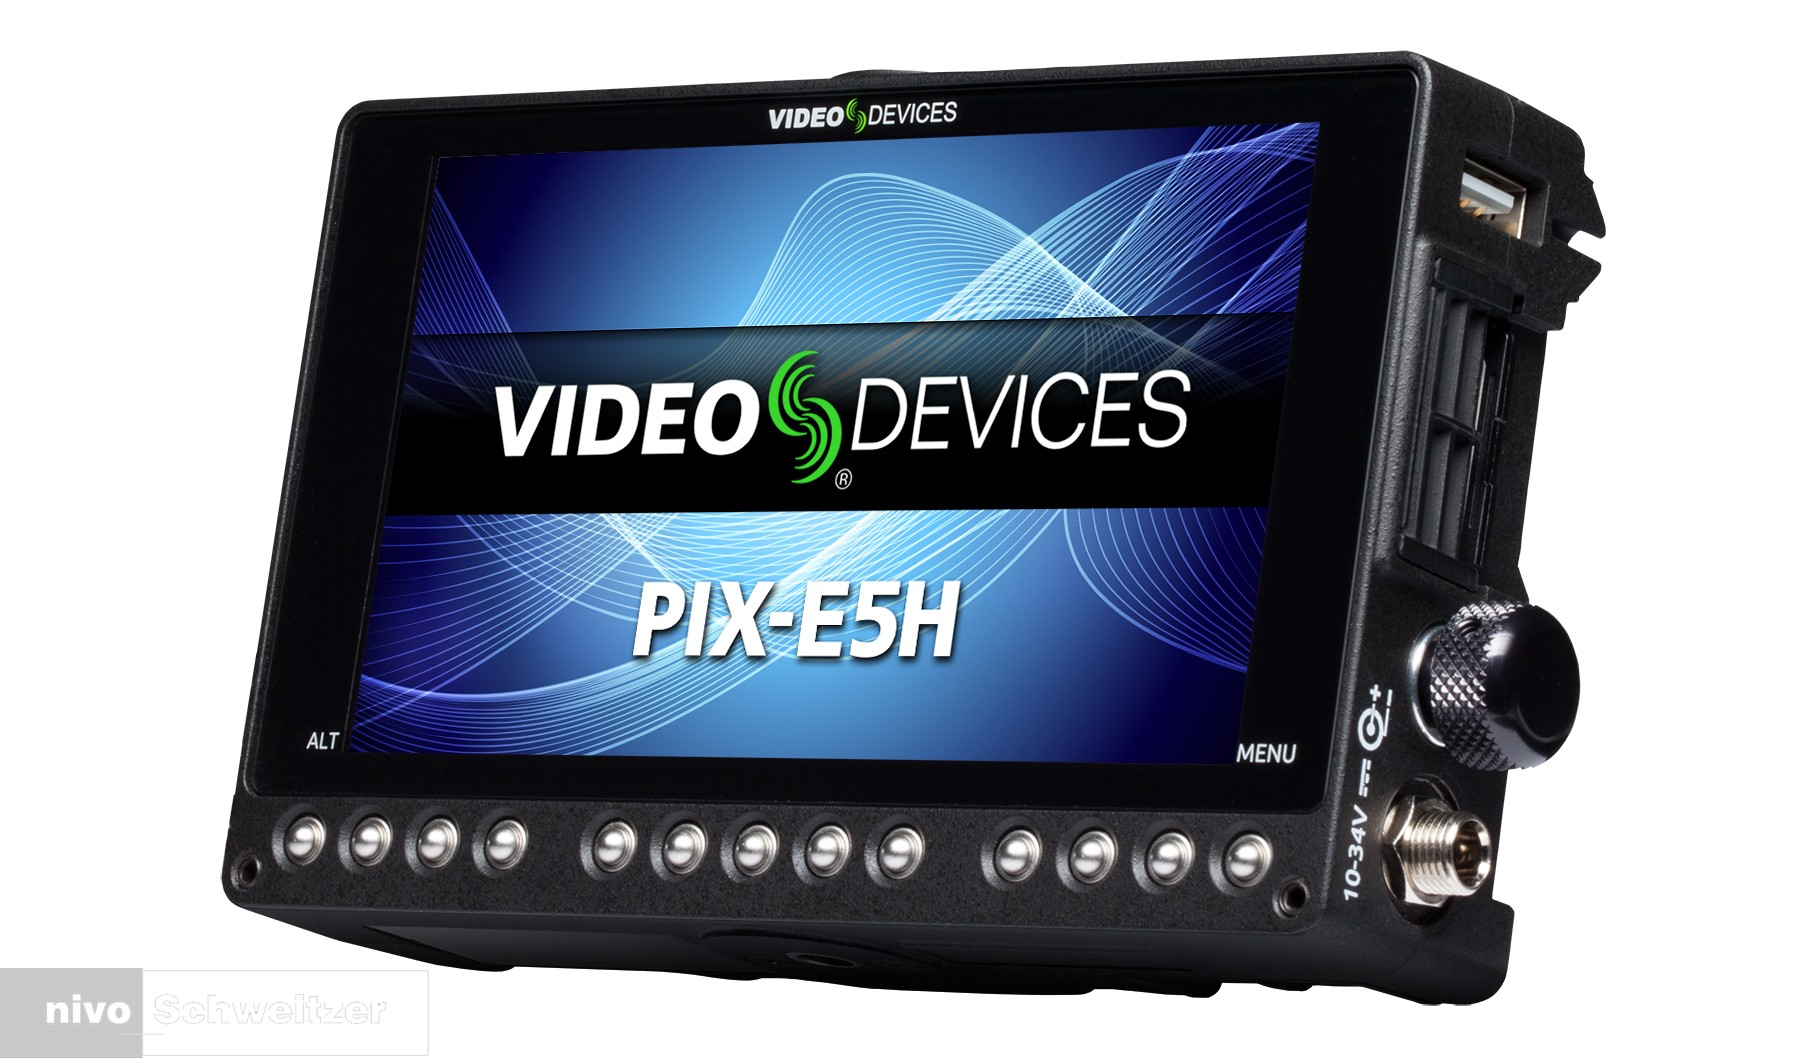 Video Devices PIX-E5H 51920x1080/HDMI/recorders, Apple ProRes 422HQ,  supports 4K